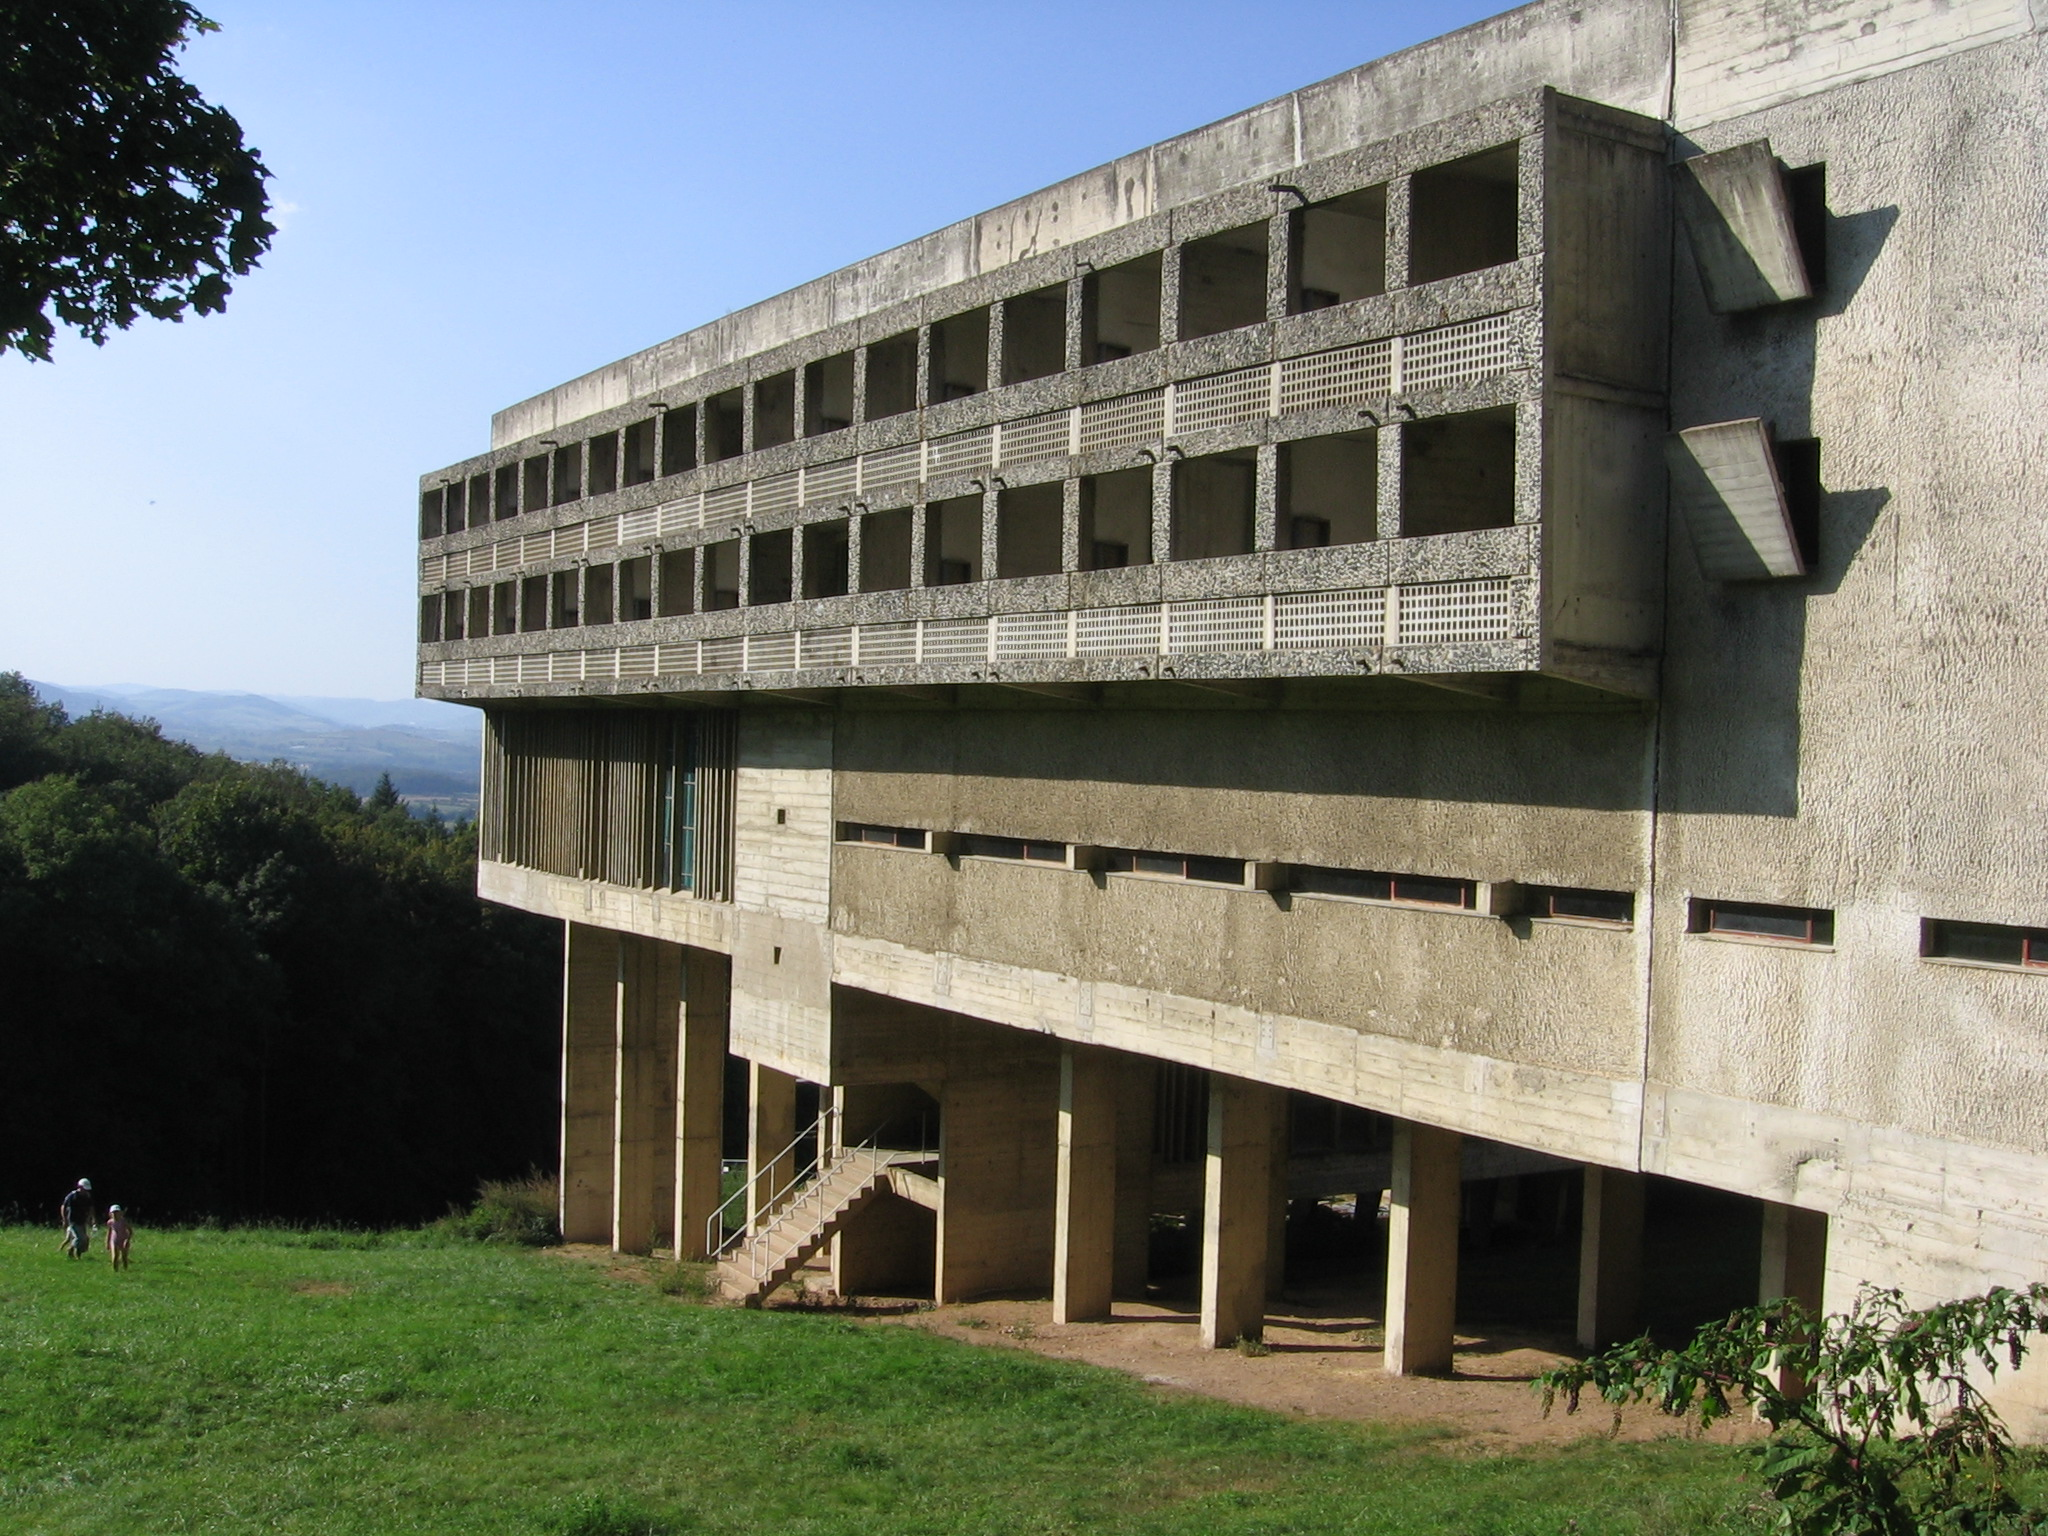 The Convent of Sainte Marie de La Tourette (1953u20131960)